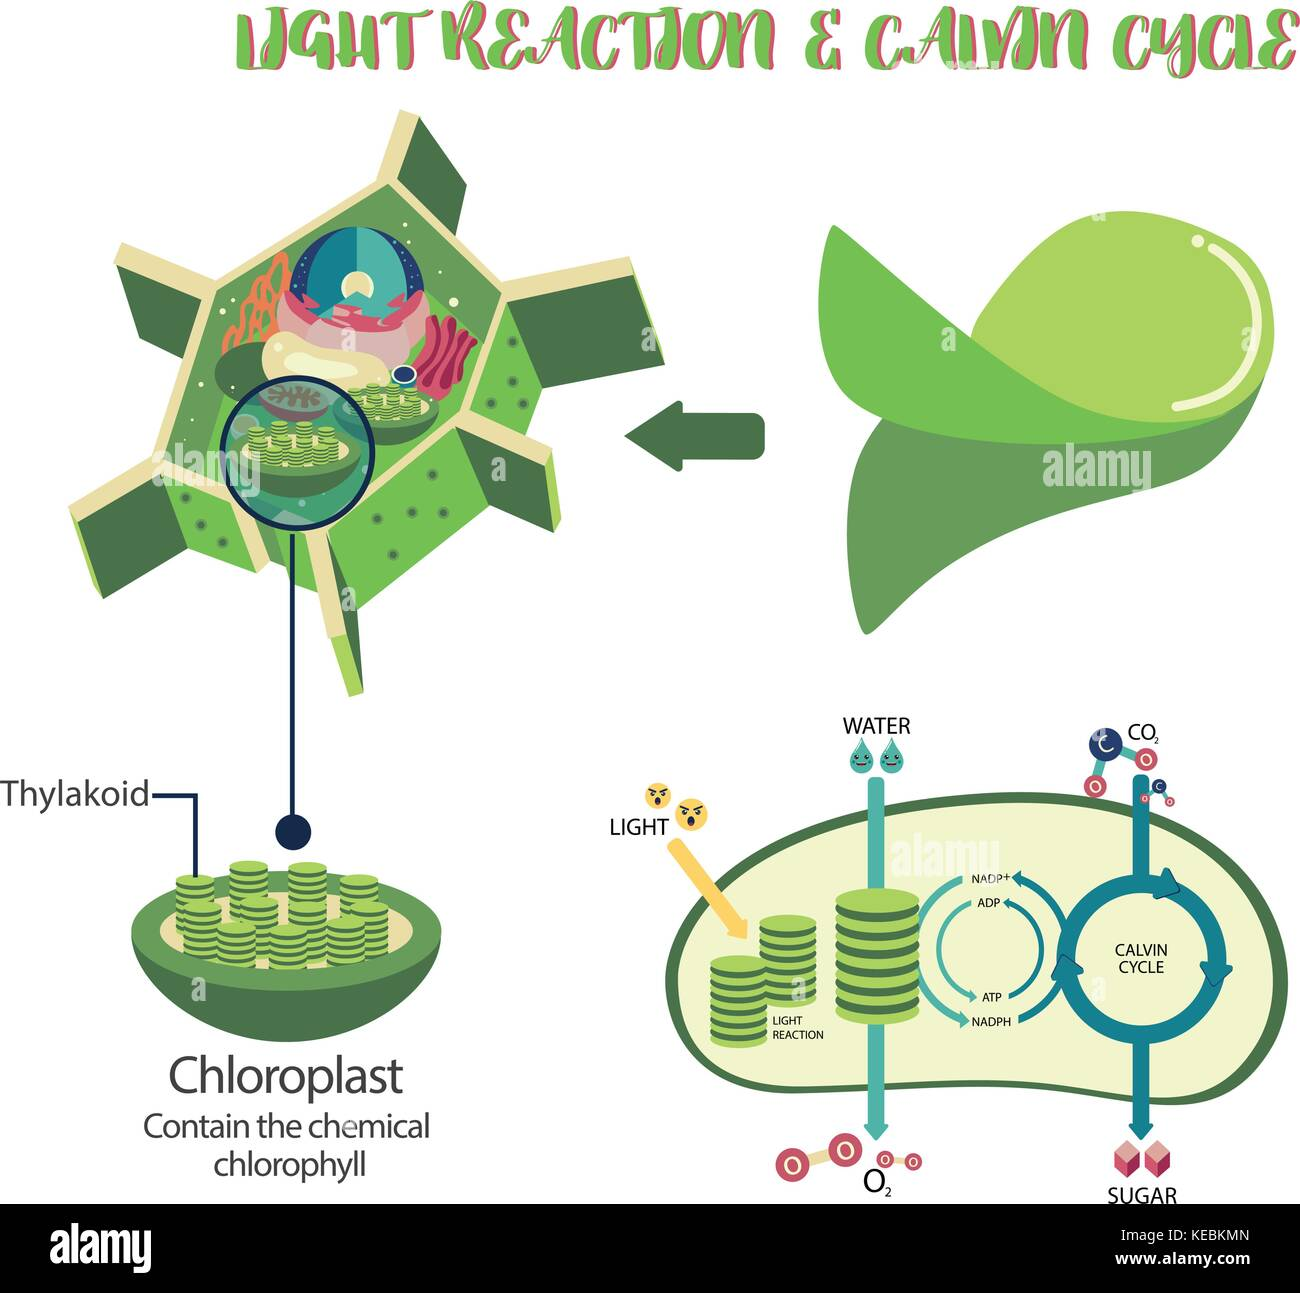 Photosynthesis Diagram High Resolution Stock Photography And Images Alamy Synthesis = to join) is the single most important process on earth on which depends the existence of human beings and almost all other living organisms. https www alamy com stock image photosynthesis plant cell diagram illustration vector design 163755445 html